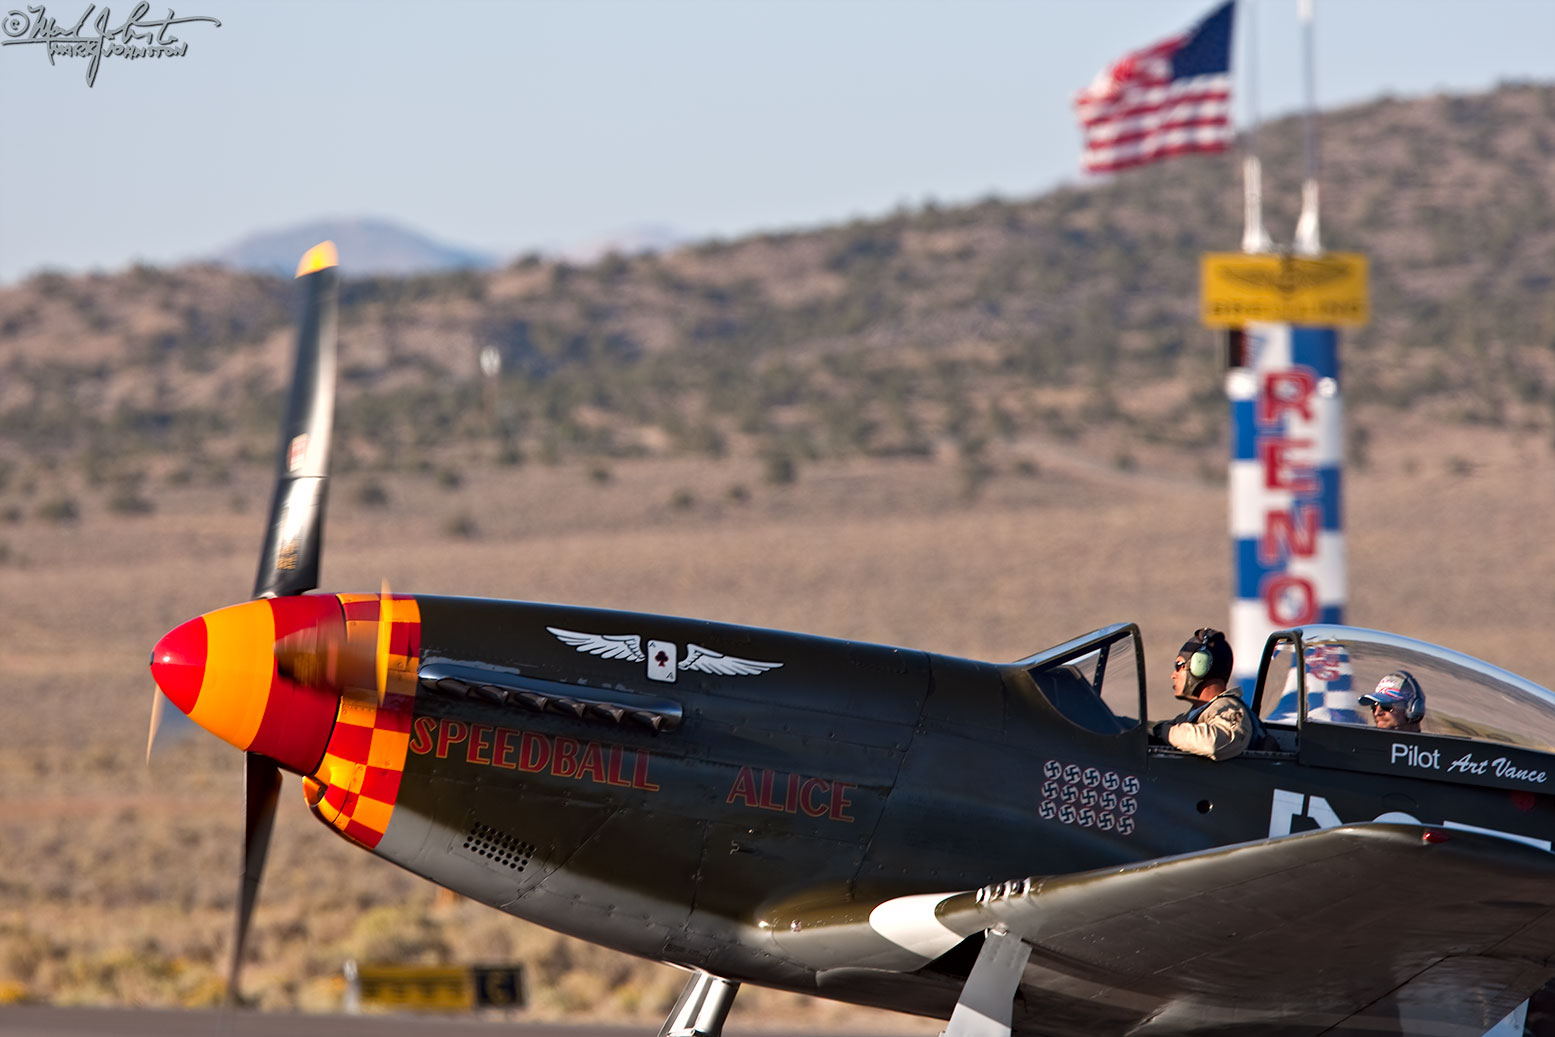 Unlimited Class aircraft at the Reno Air Races.